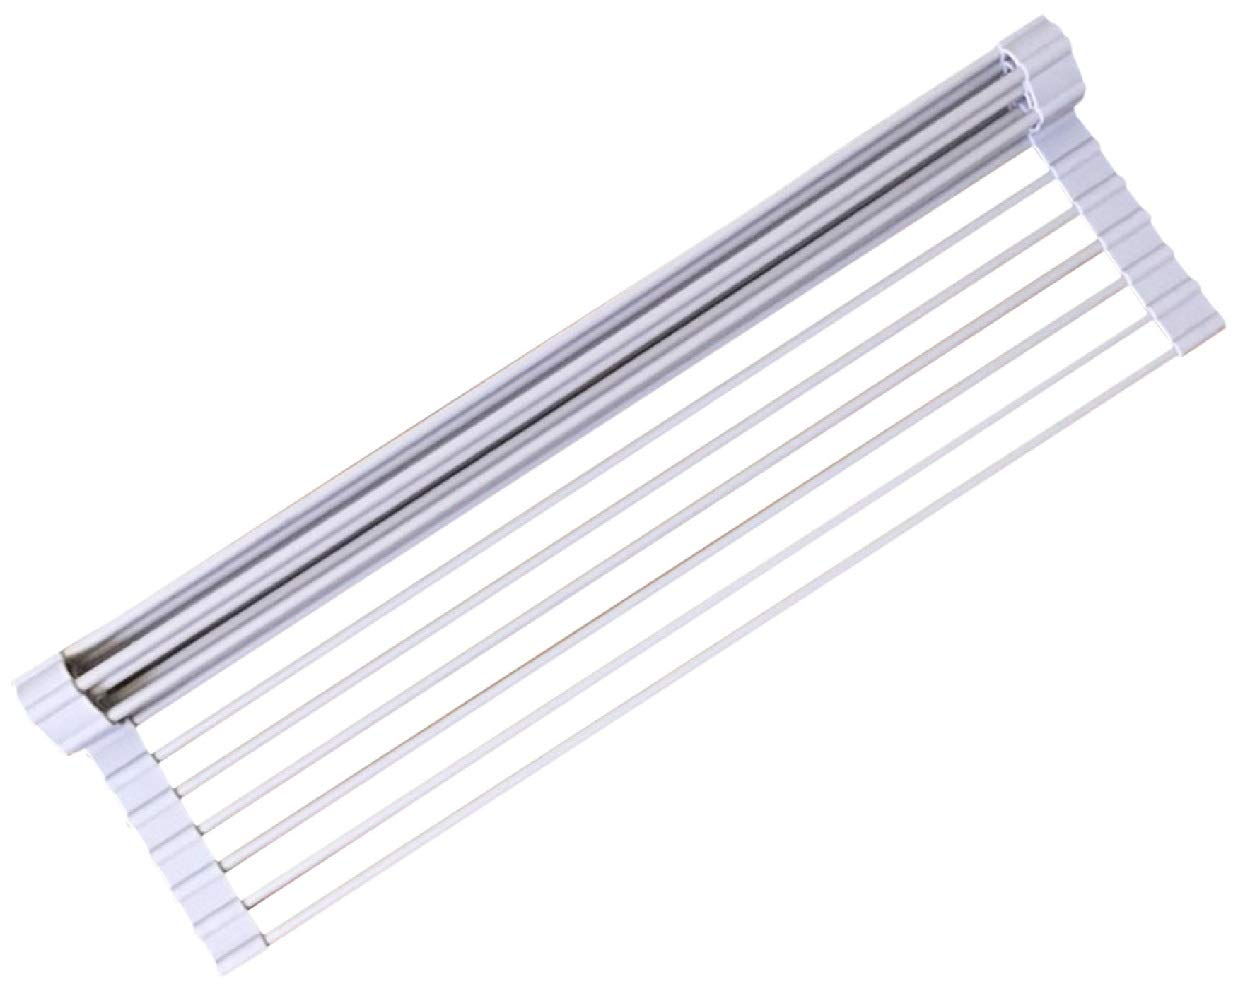 Roll-up Dish Drying Rack by Rustle - Silicon Coated Steel Solid Round Rods- Multipurpose Over the Kitchen Sink Drainer with Heat Resistant and Rust-Proof Coating